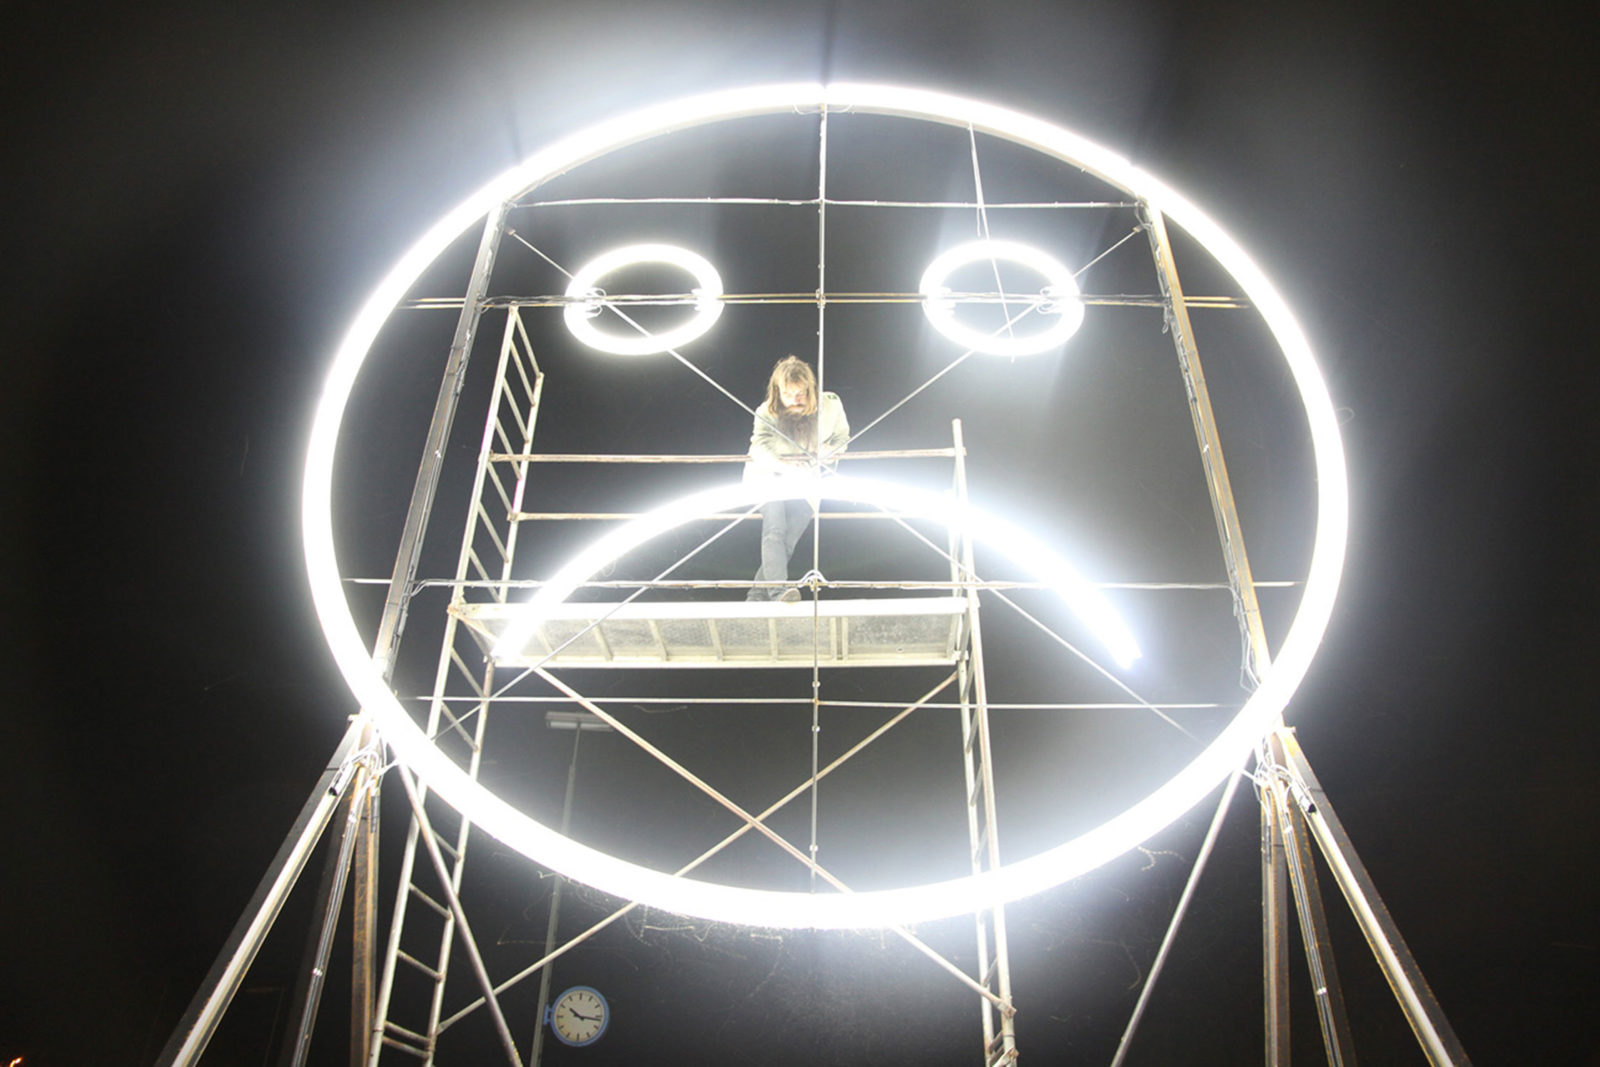 Public Face, 2010,  in cooperation with Benjamin Maus and Richard Wilhelmer, courtesy the artists and alexander levy, Berlin